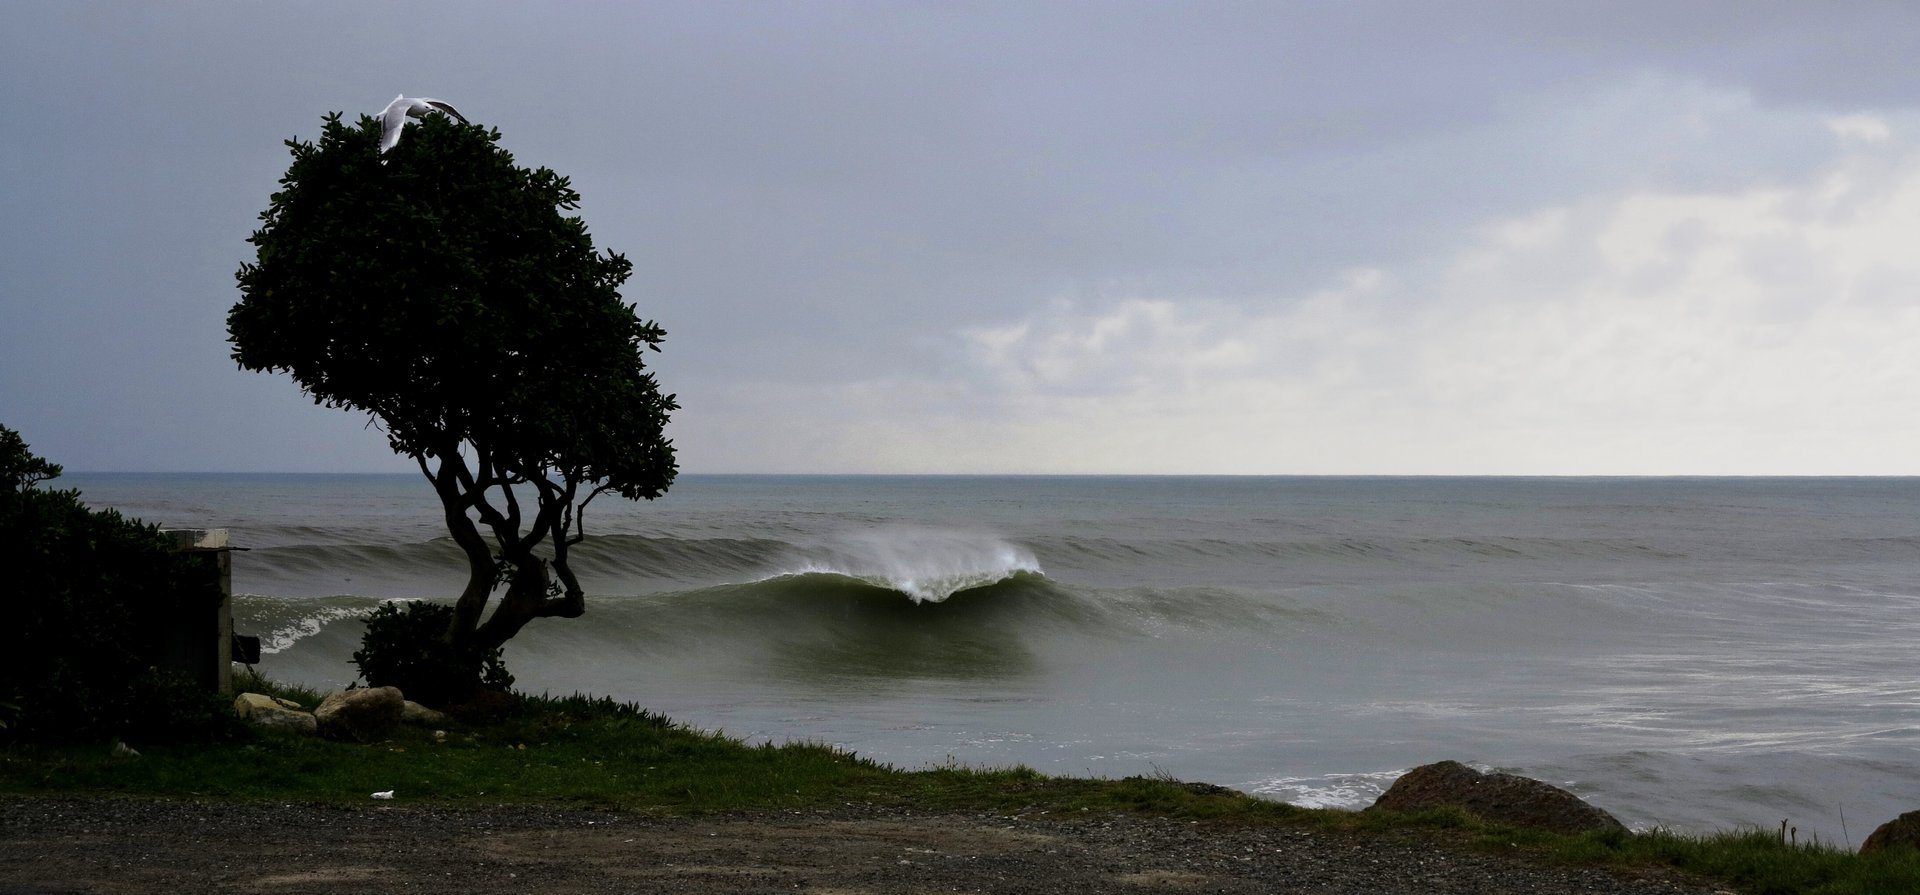 armstrong's photo of Greymouth